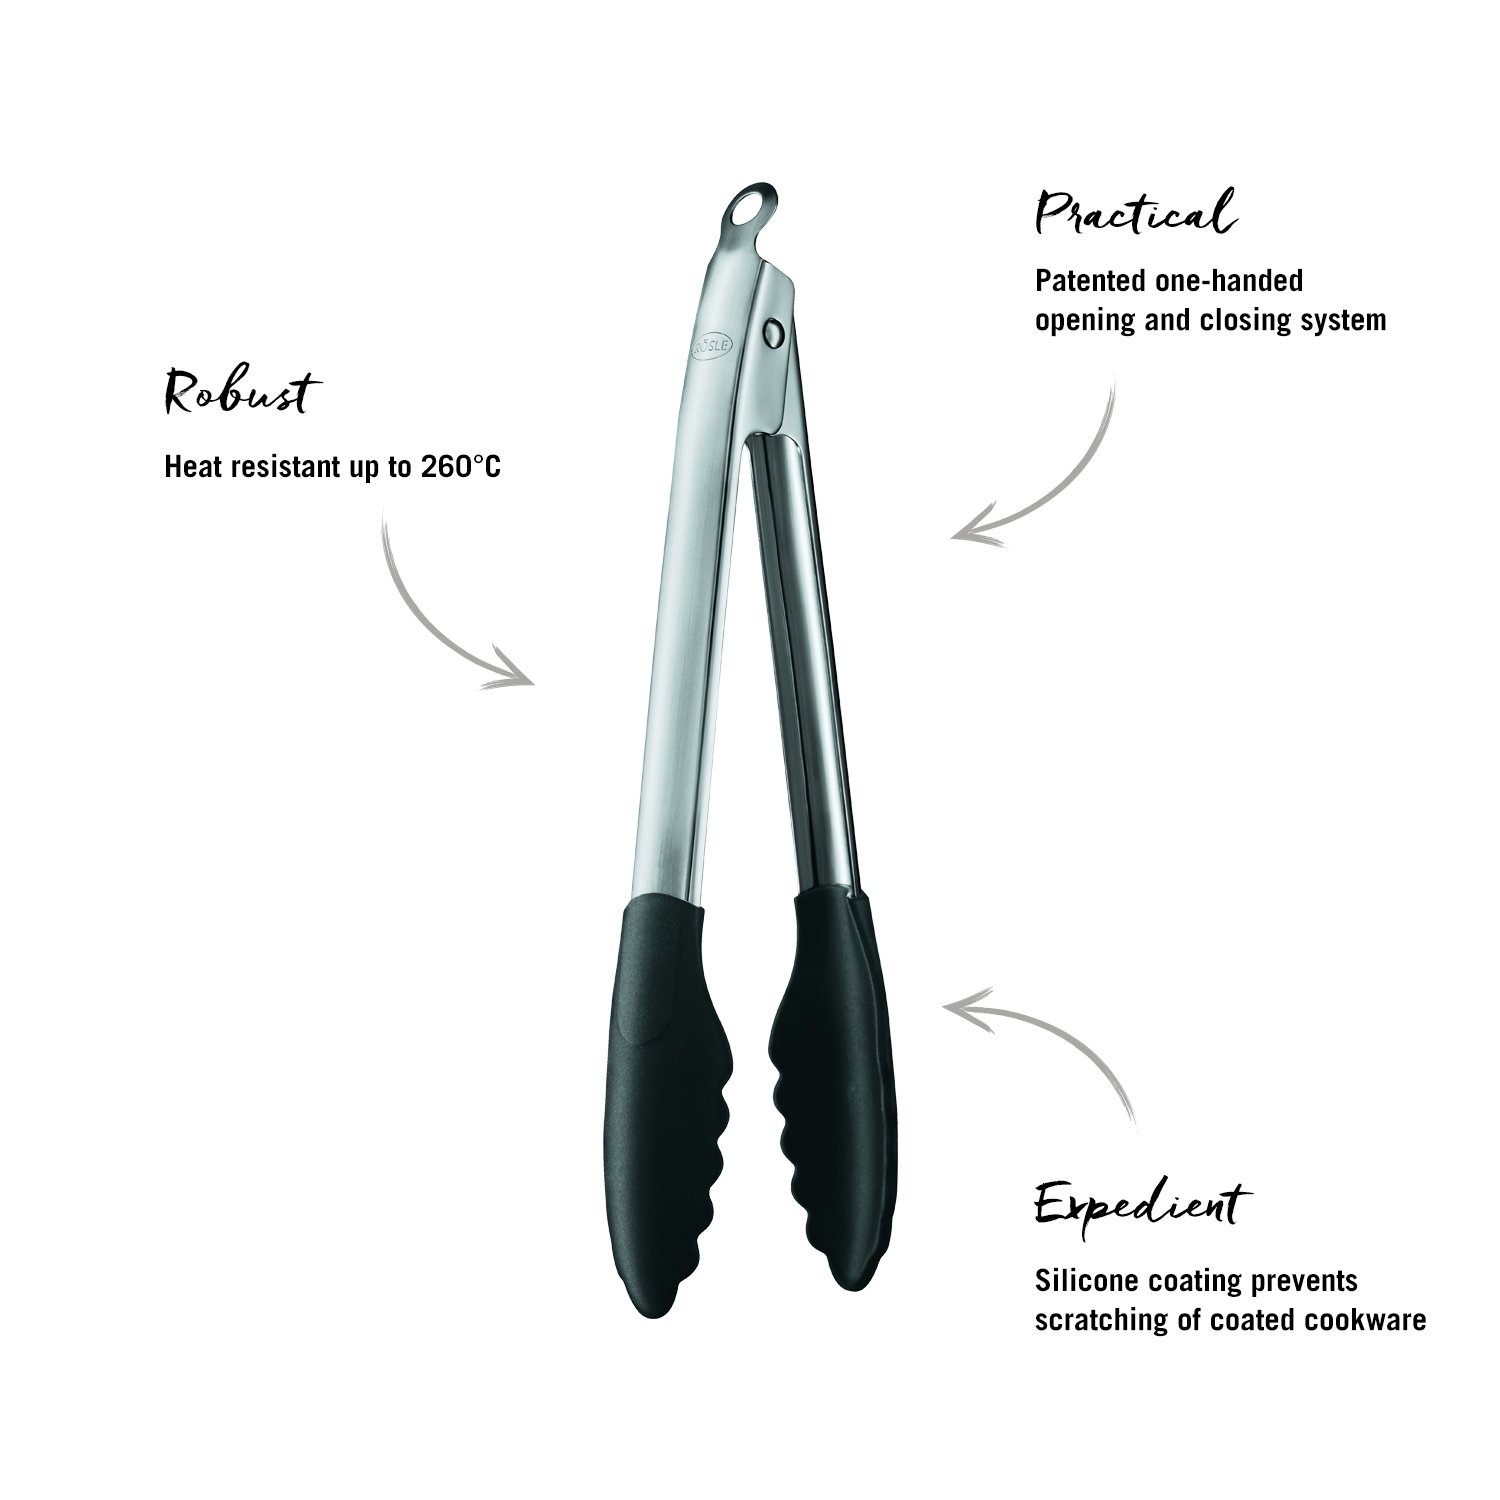 Rosle Stainless Steel Lock & Release Silicone Coated Cooking Tongs, 12-inch by Rosle (Image #7)